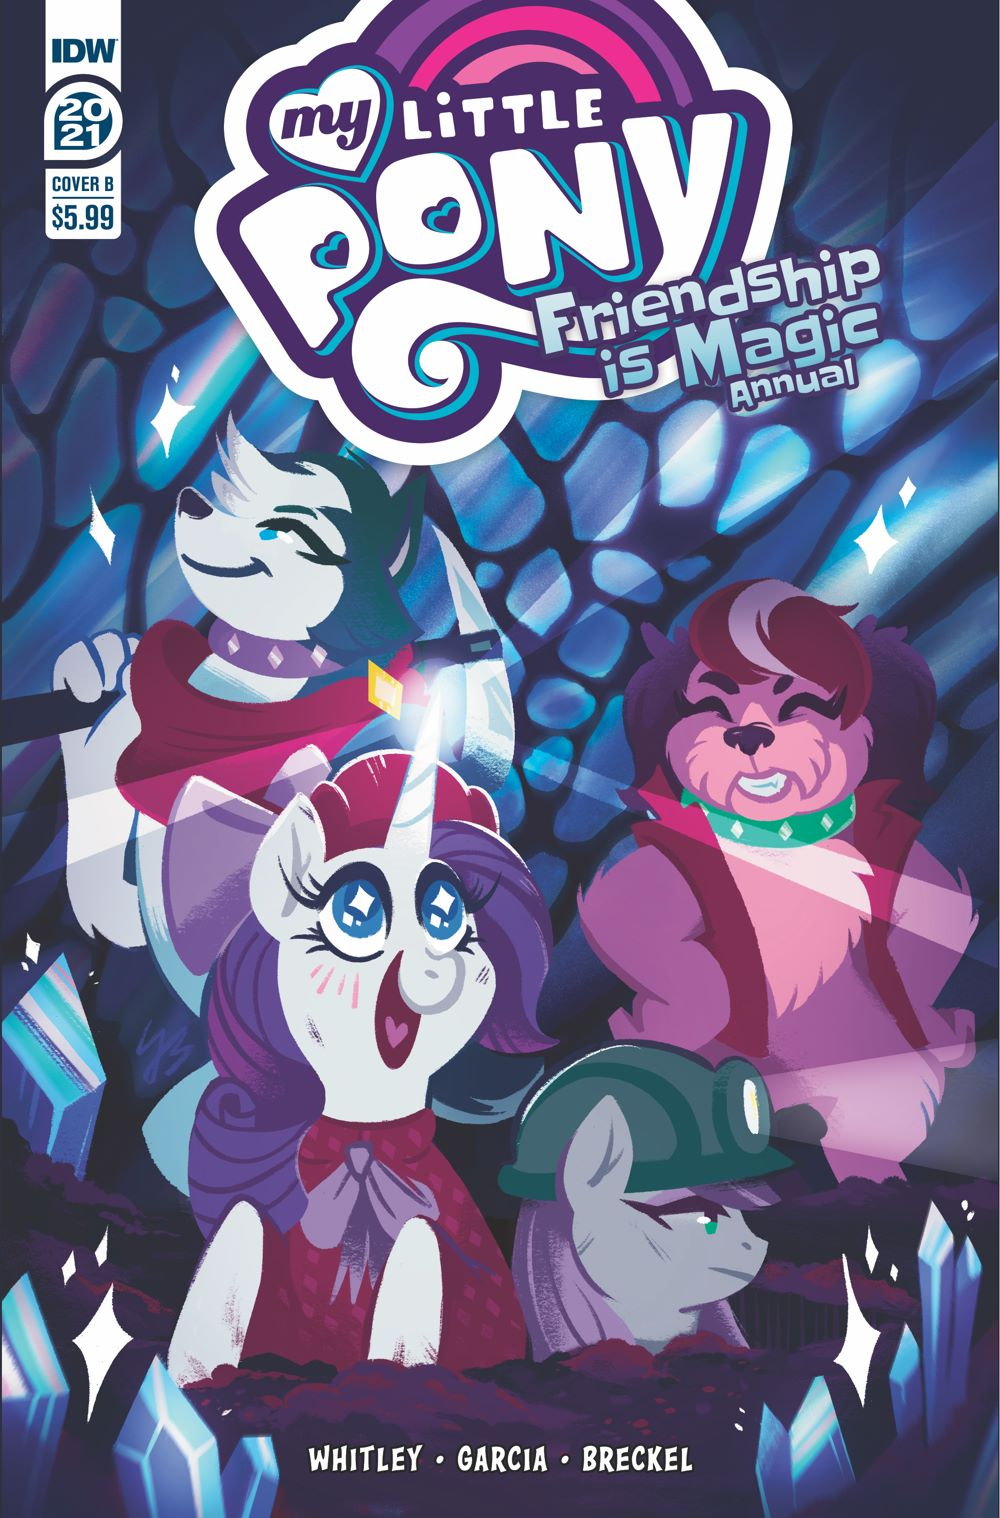 MLP_Annual2021-coverB ComicList Previews: MY LITTLE PONY FRIENDSHIP IS MAGIC 2021 ANNUAL